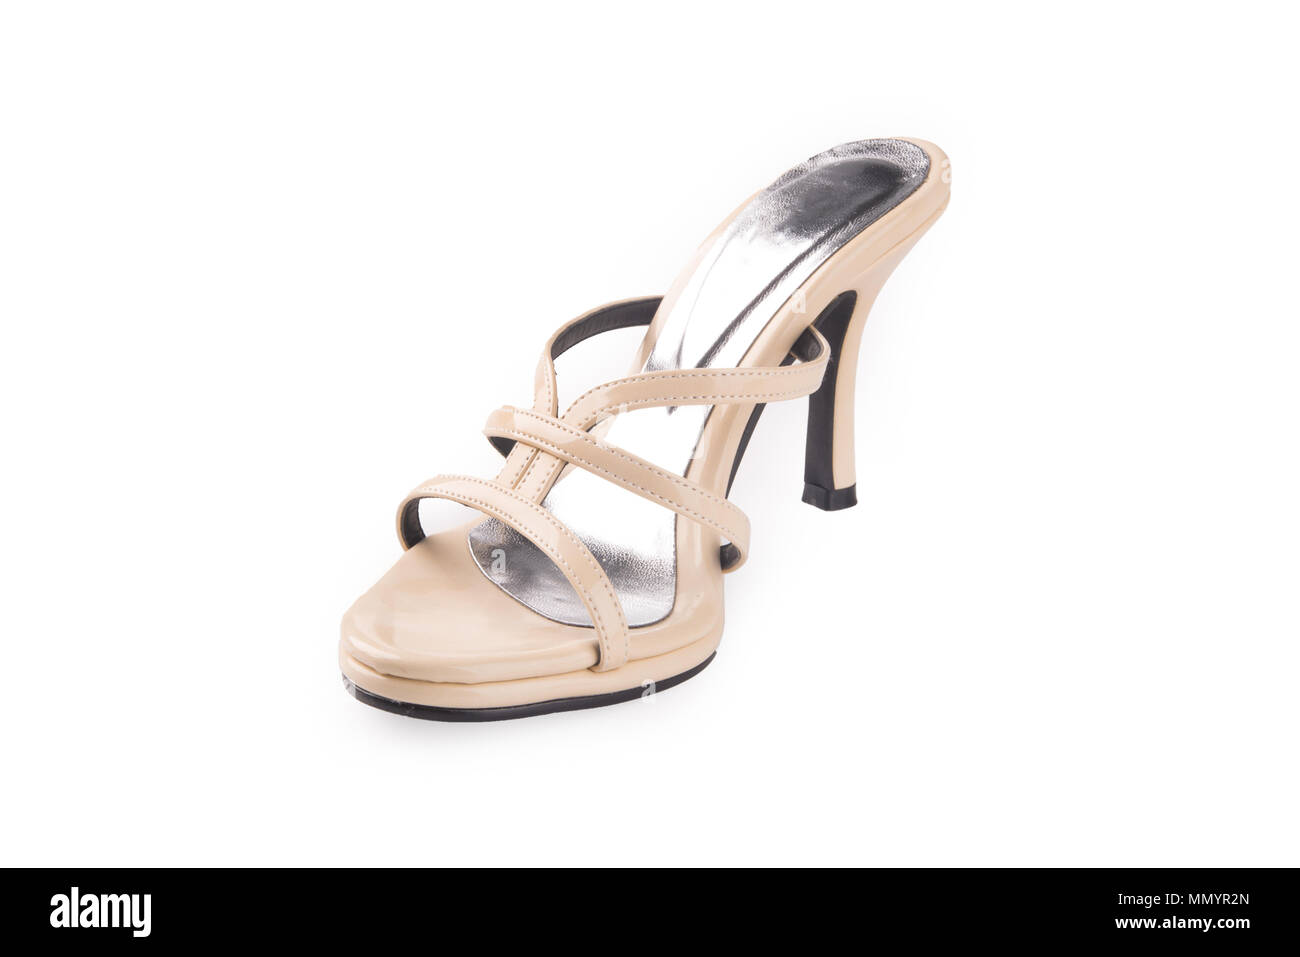 shoe or Brown colour casual woman shoes on a background Stock Photo